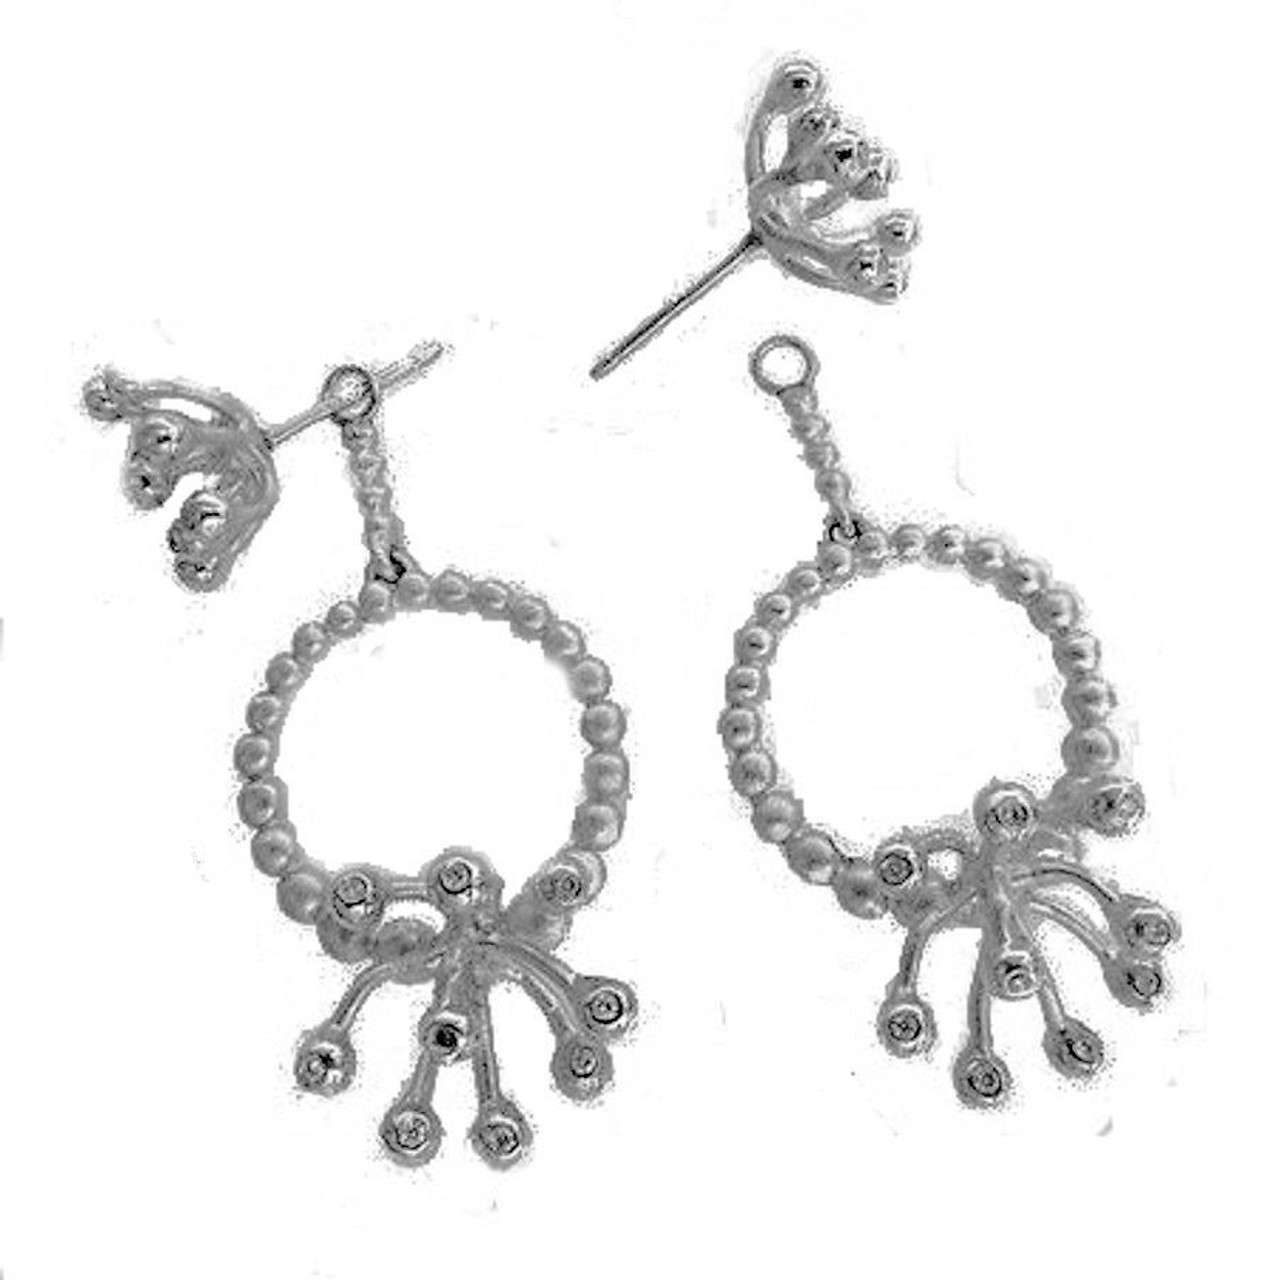 Circle Fireworks Earrings with detachable drops so the studs can be worn alone or with different drops. Shown here in silver and diamonds with the two parts separated.